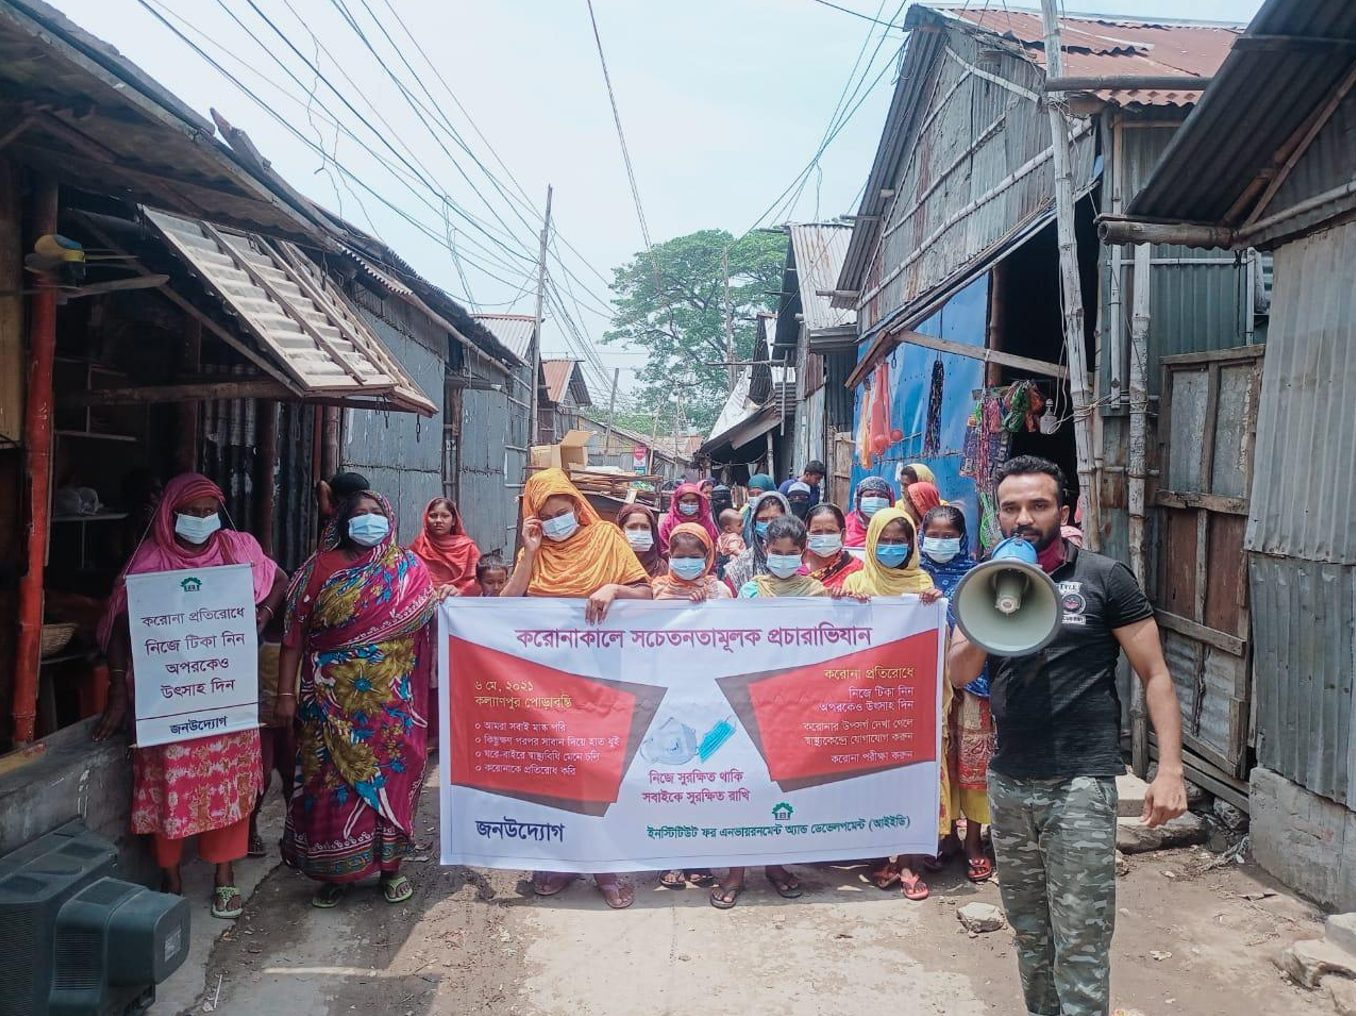 Supporting communities in the COVID-19 pandemic: ARISE community researcher experiences